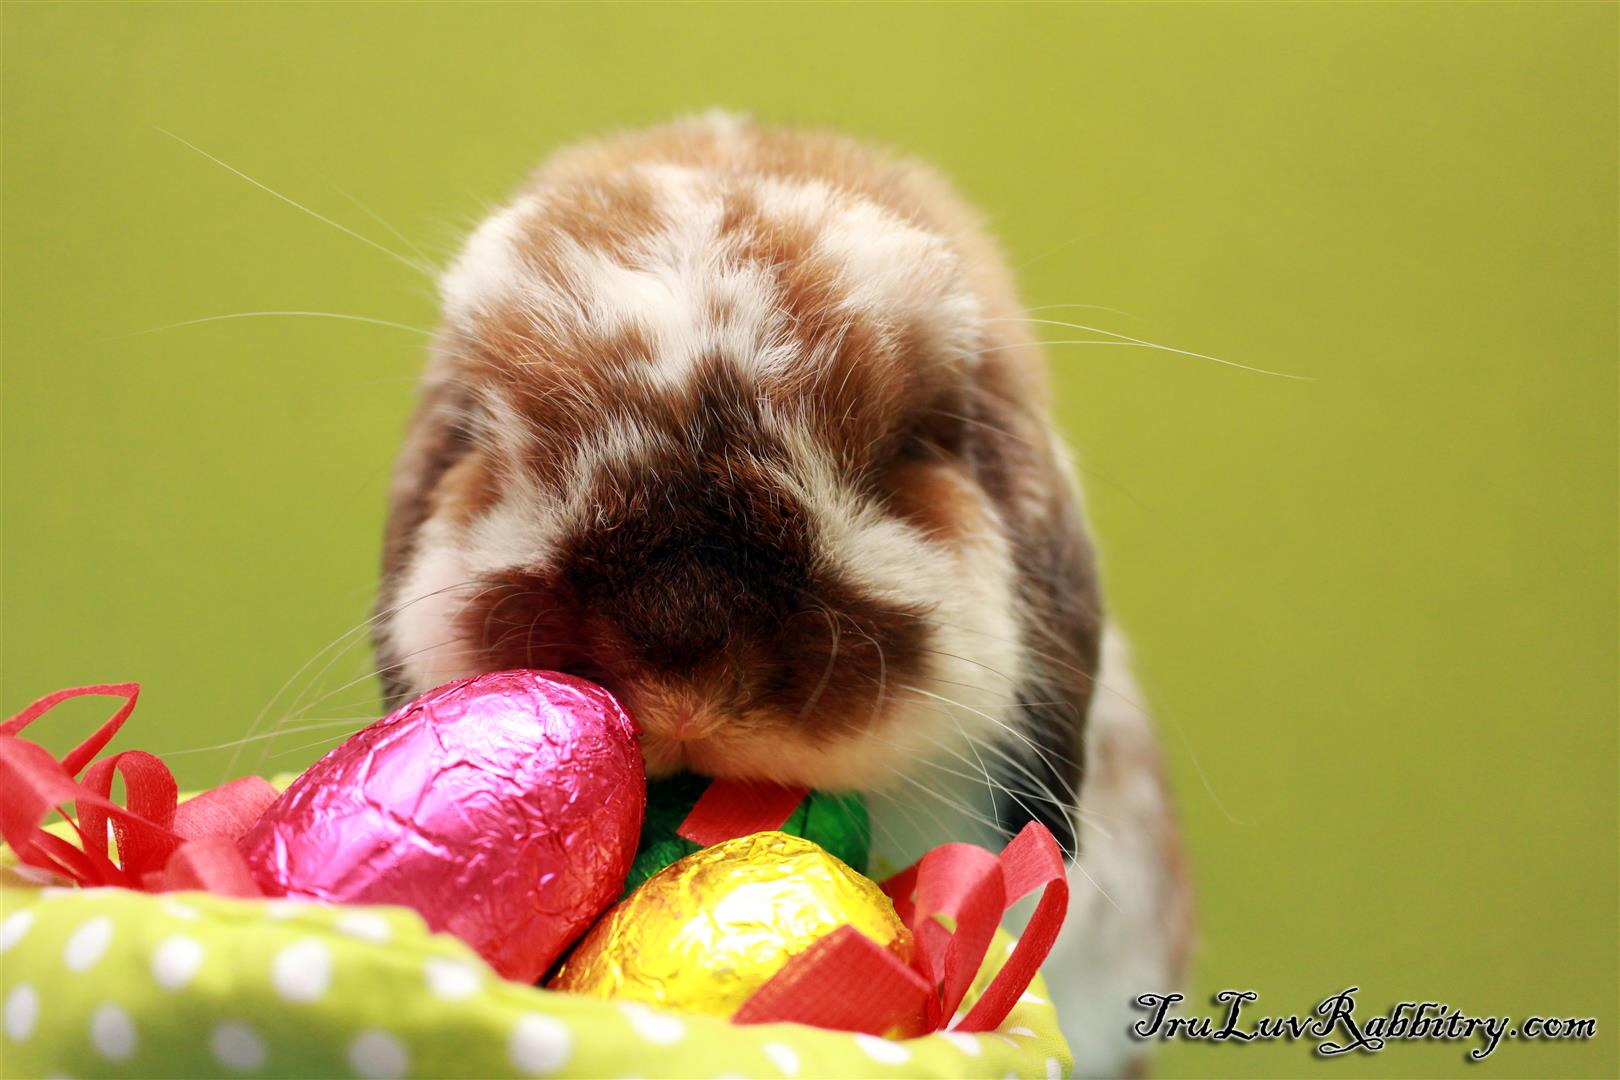 Secondly, if you get me as a pet this Easter, please love me forever...